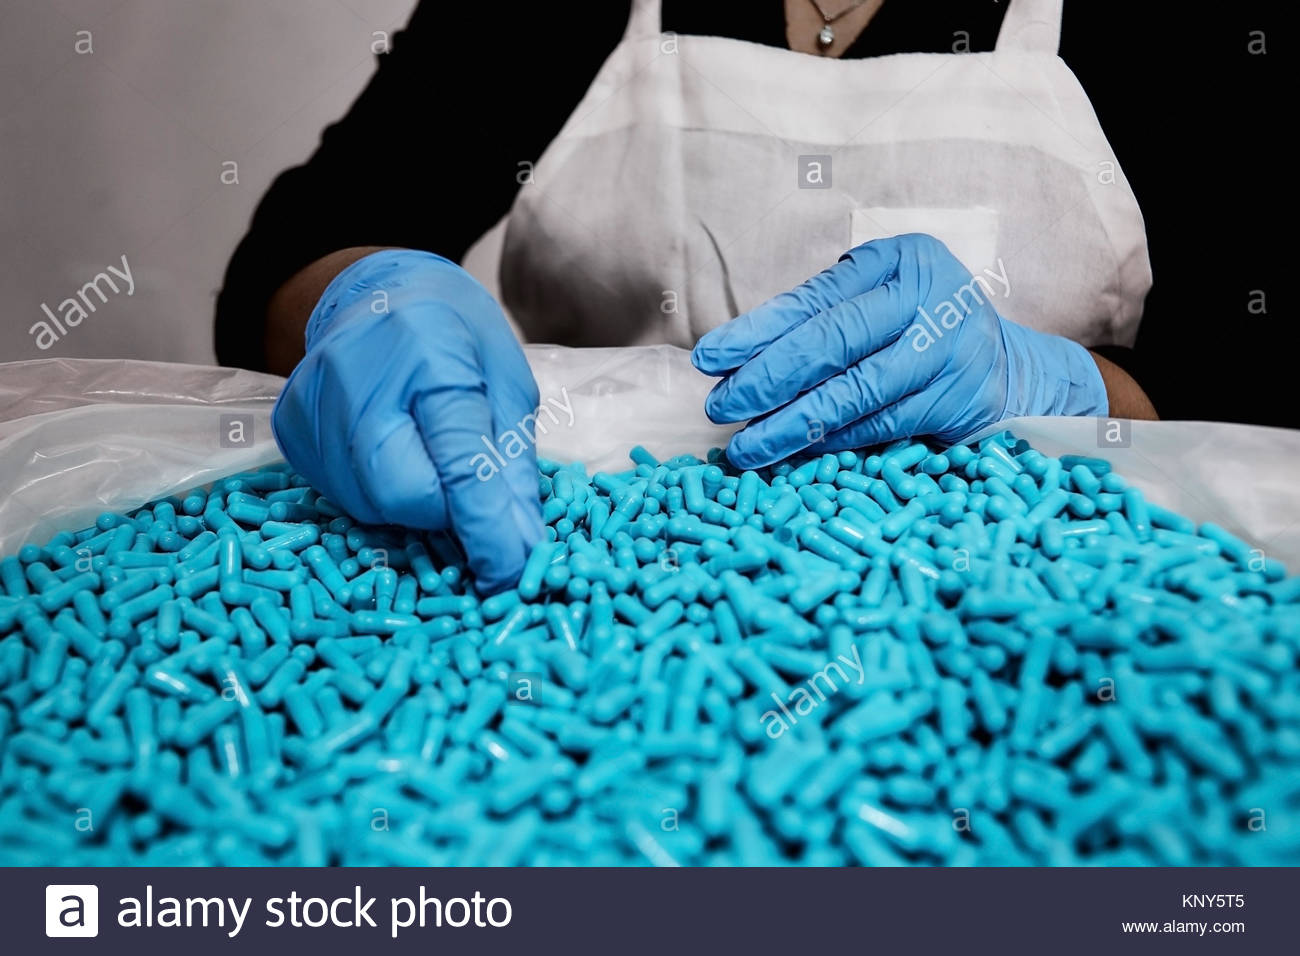 pharmaceutical nutraceutical formulation compound capsules powder packaging - Stock Image